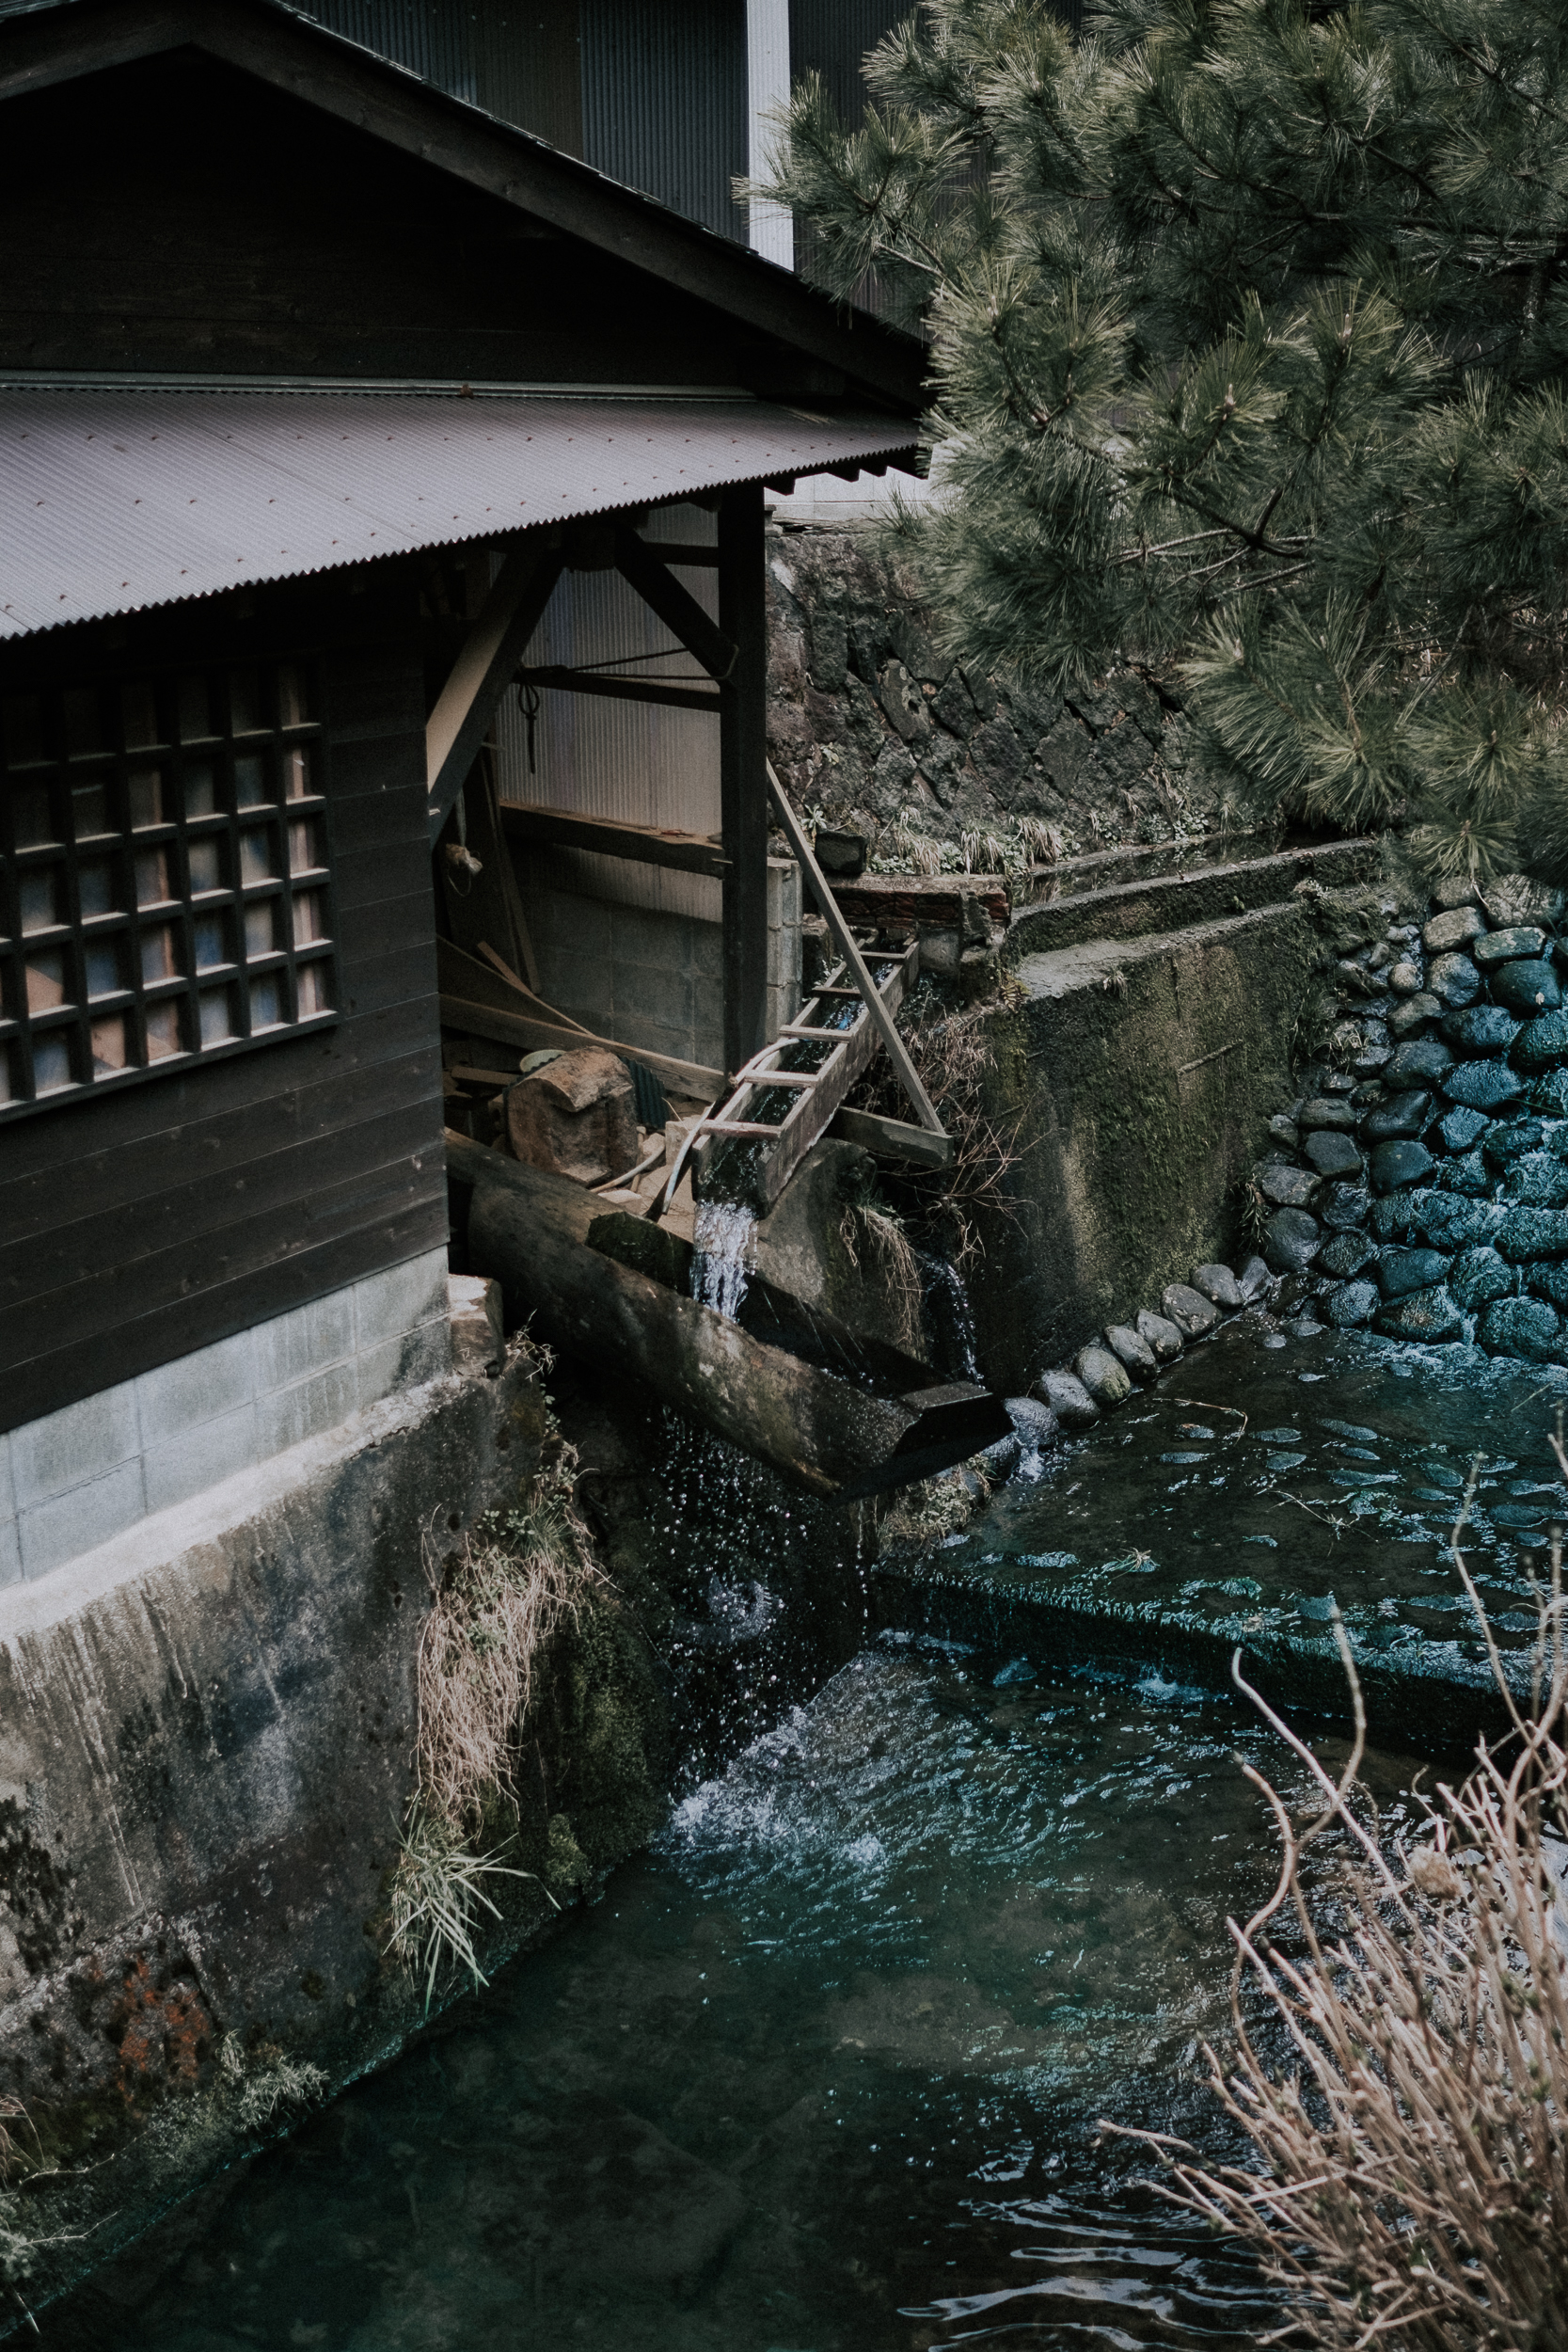 A karausu in Ontayaki no sato. As it fills with water the opposite side lifts up. When the water spills out, the other side drops and pounds the clay into powder.